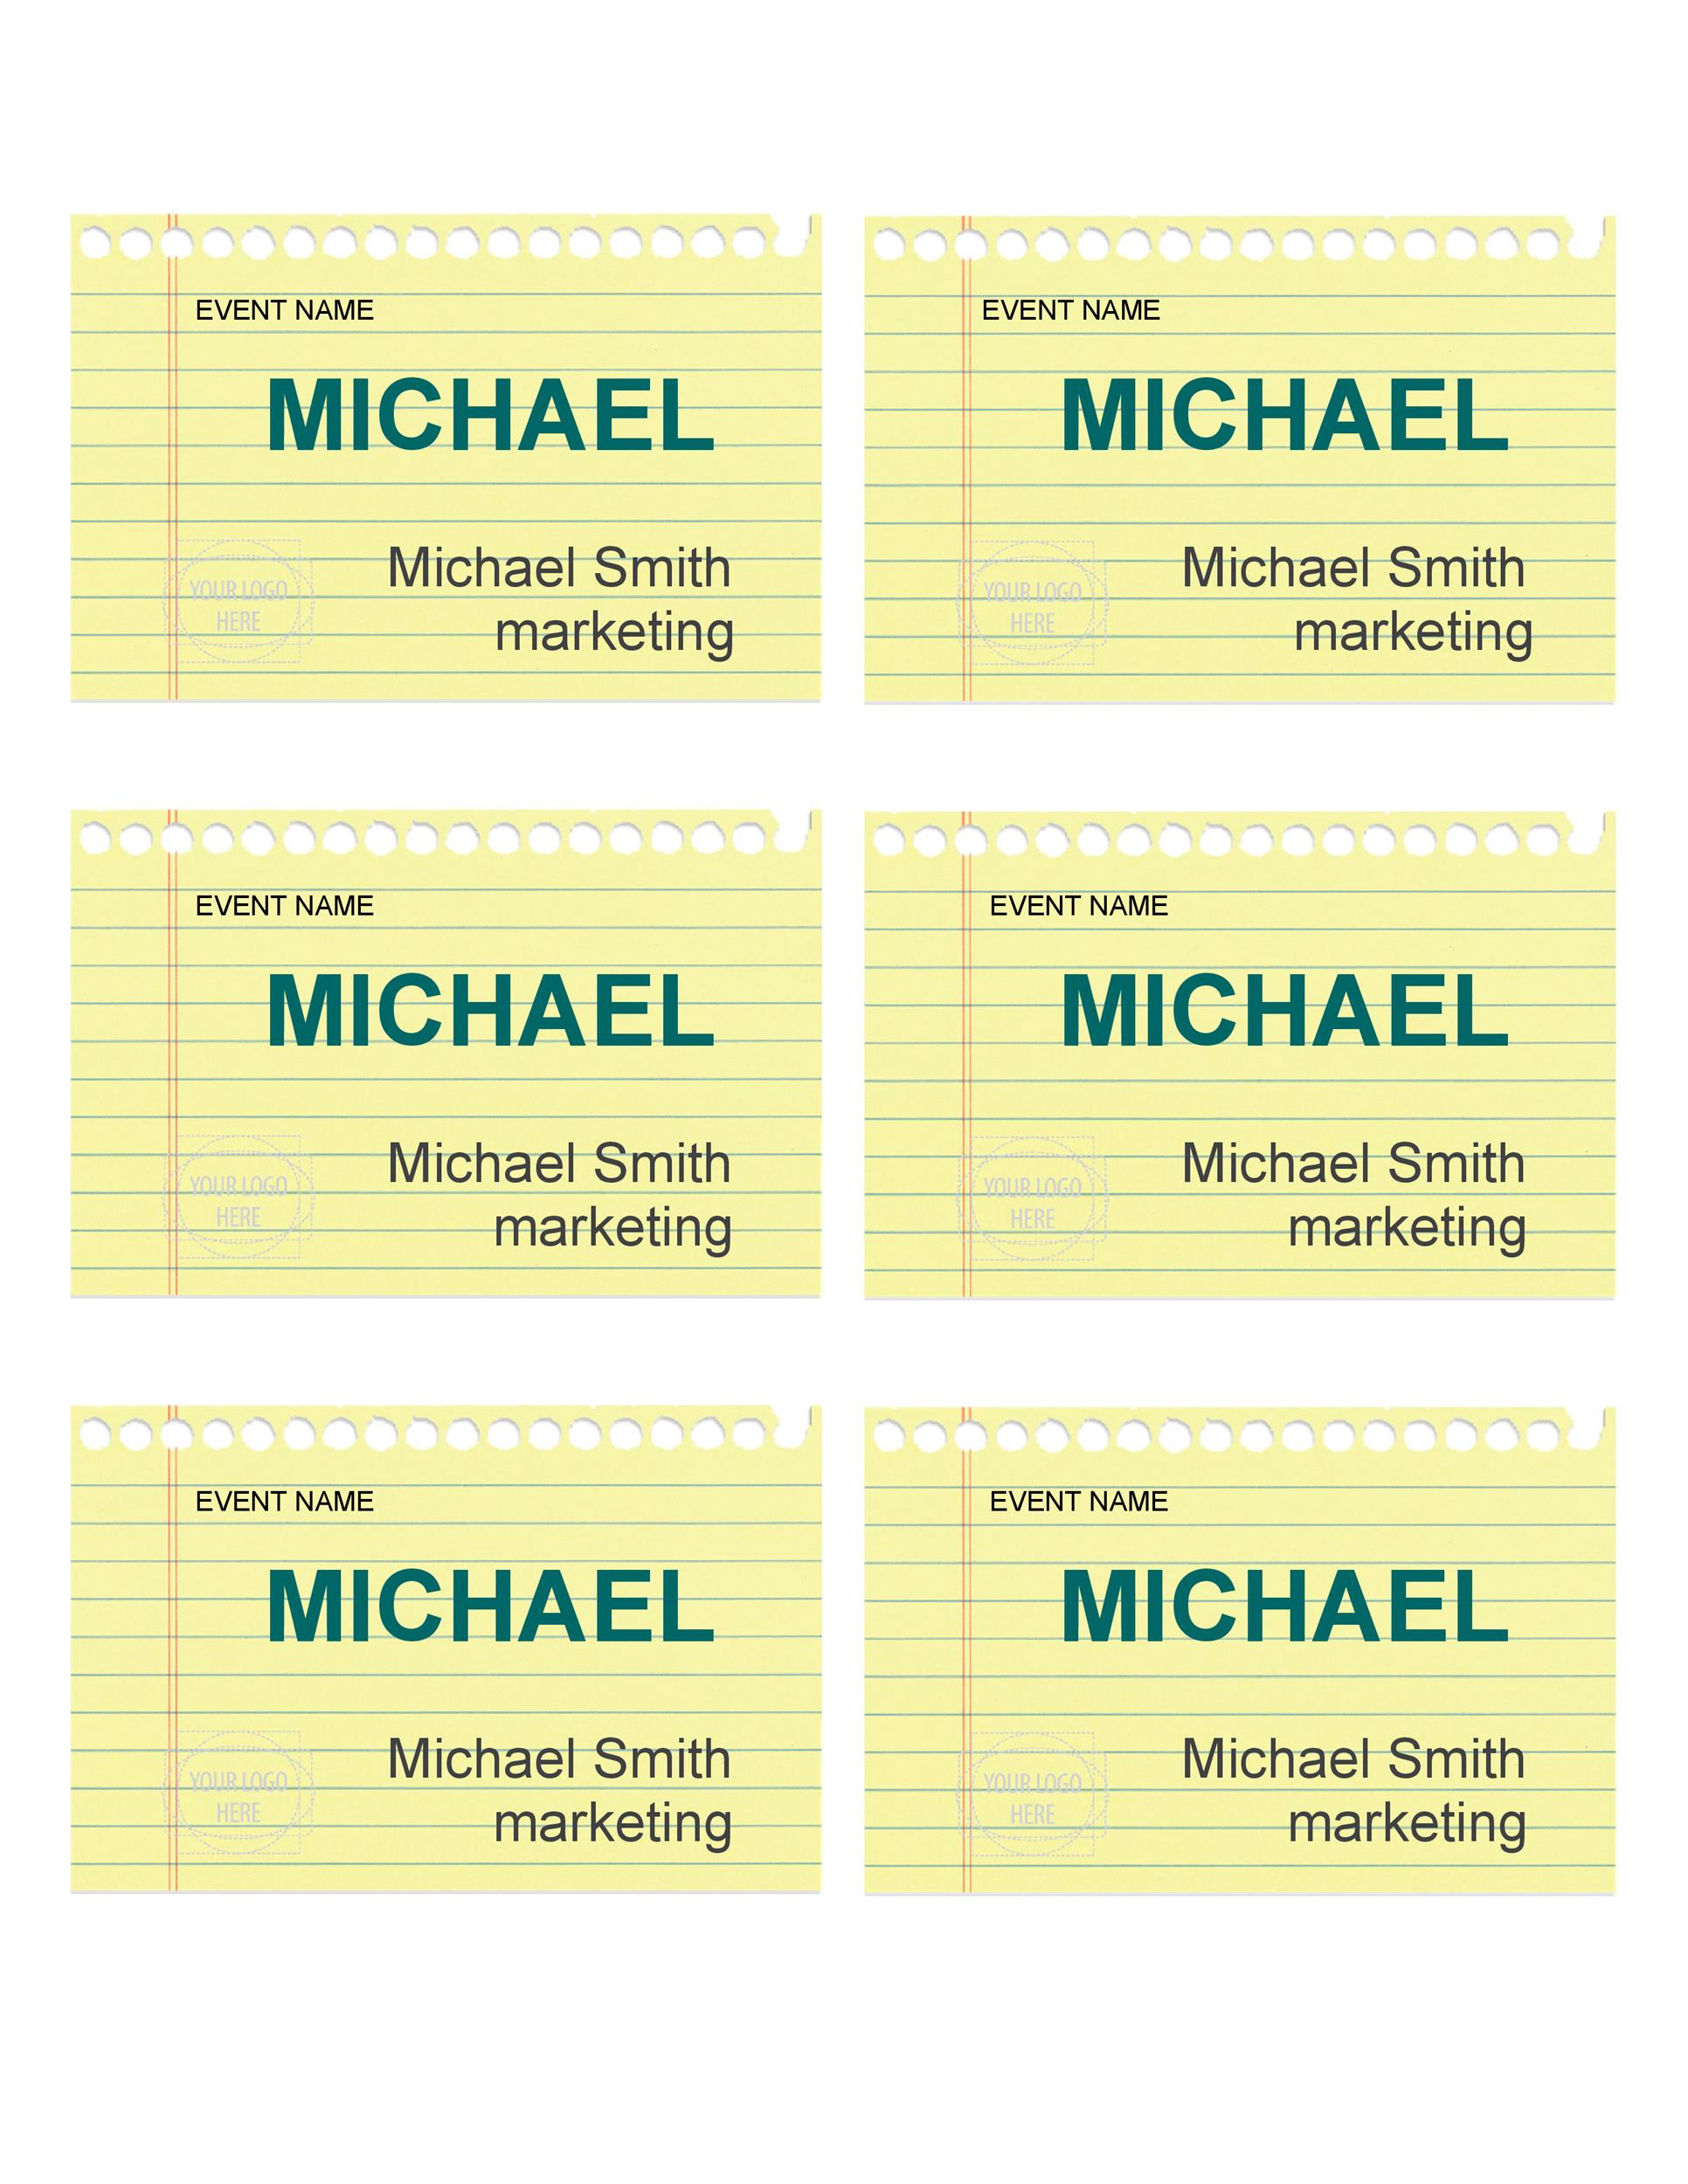 Free name tag template 15